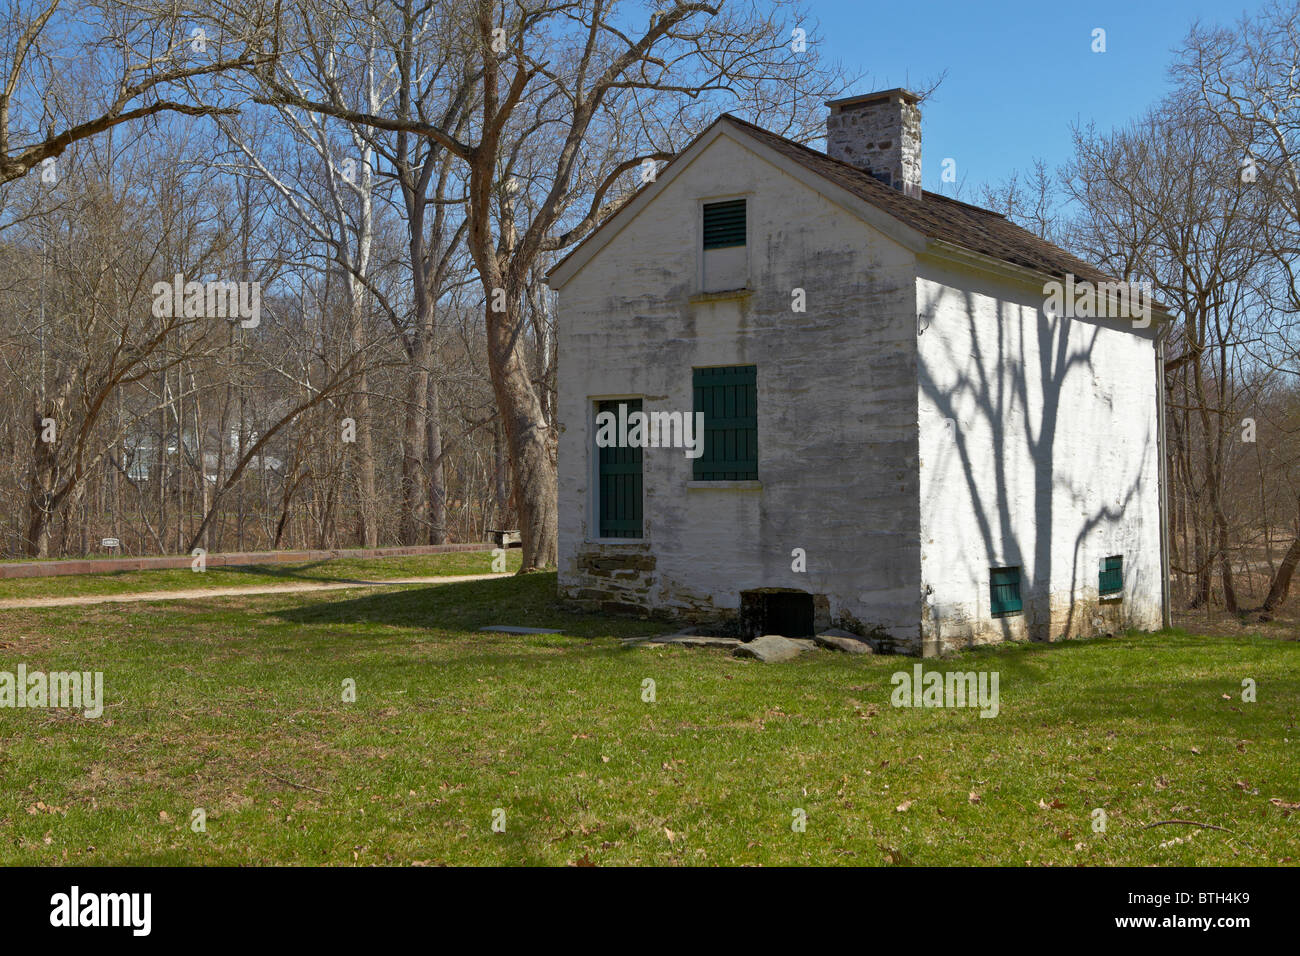 The north side and rear exterior of Lockhouse 11 on the C&O Canal, Potomac, Maryland. - Stock Image